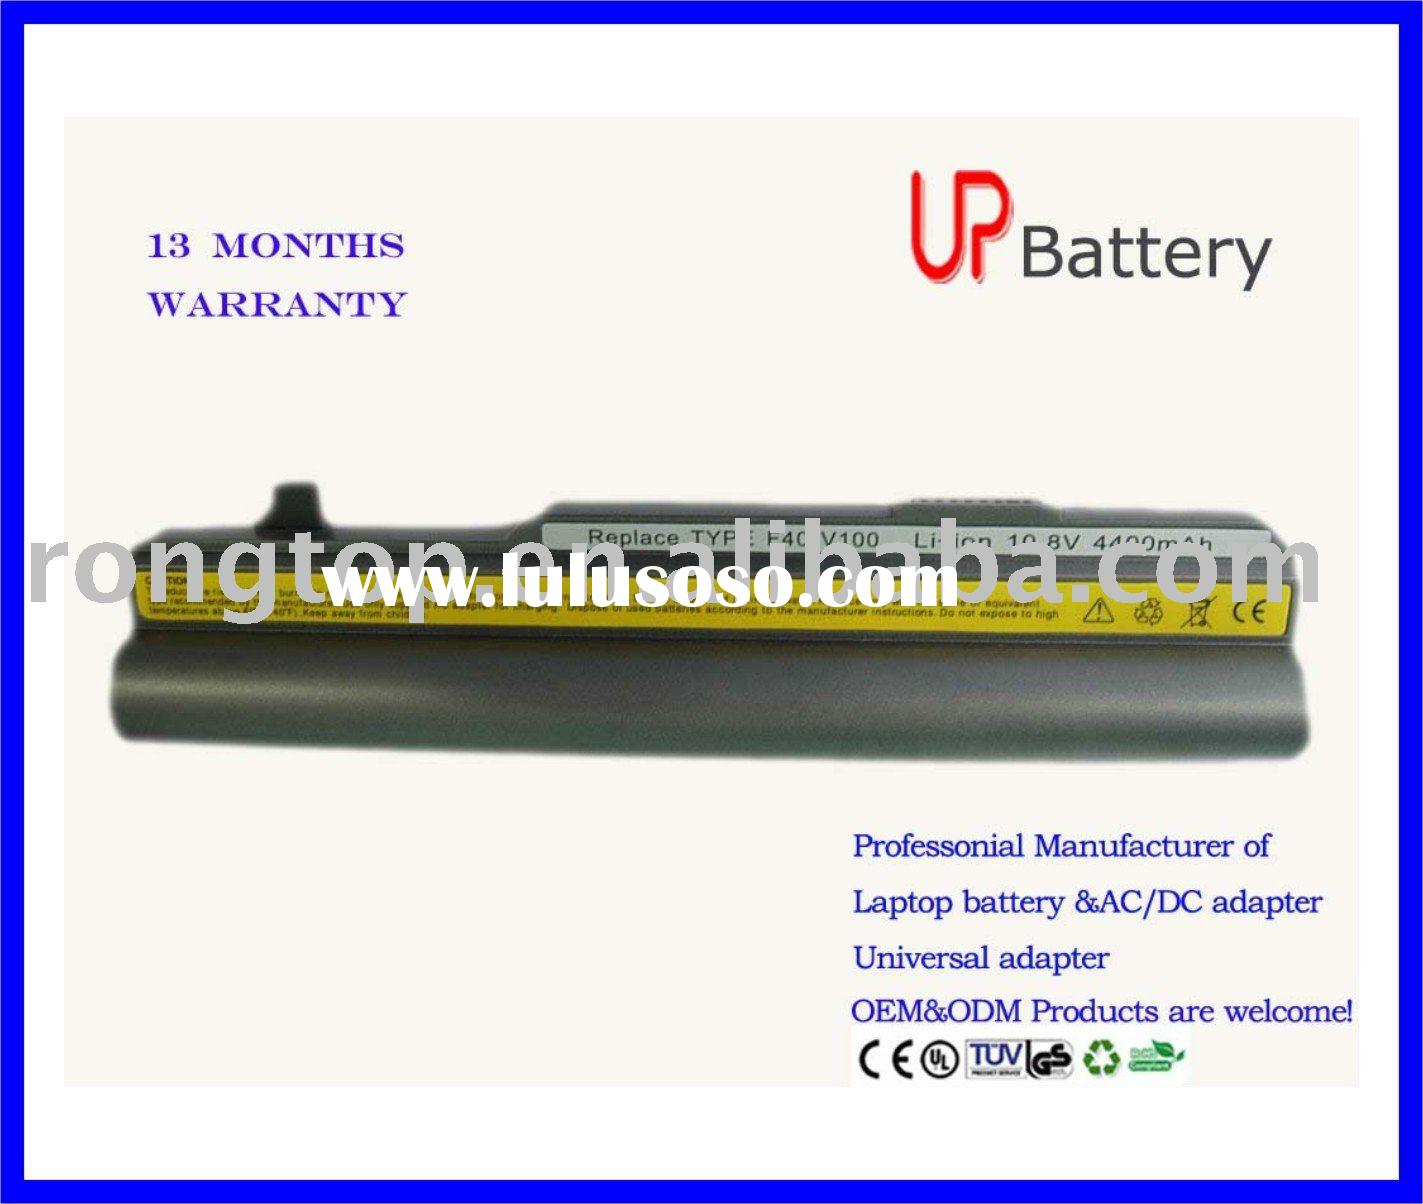 Lenovo Laptop Battery F40